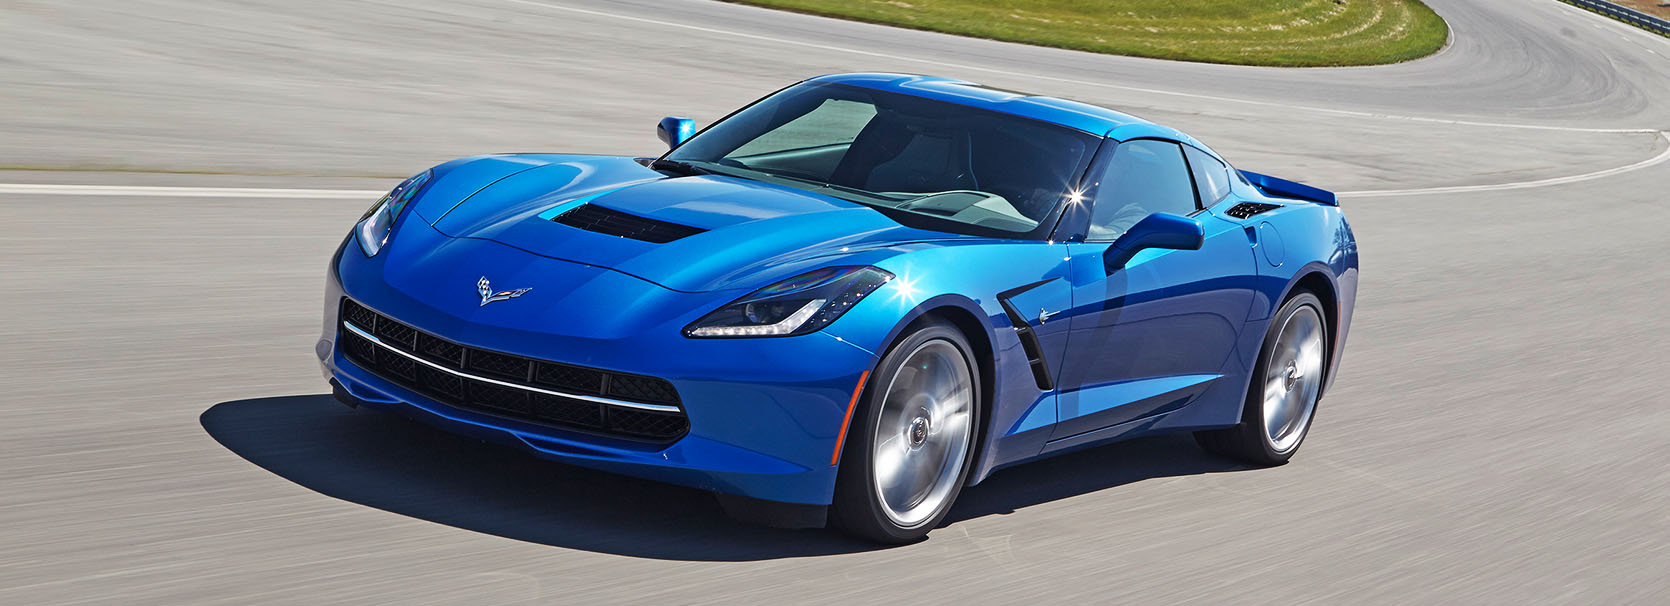 2015 corvette stingray related keywords suggestions 2015 corvette. Cars Review. Best American Auto & Cars Review